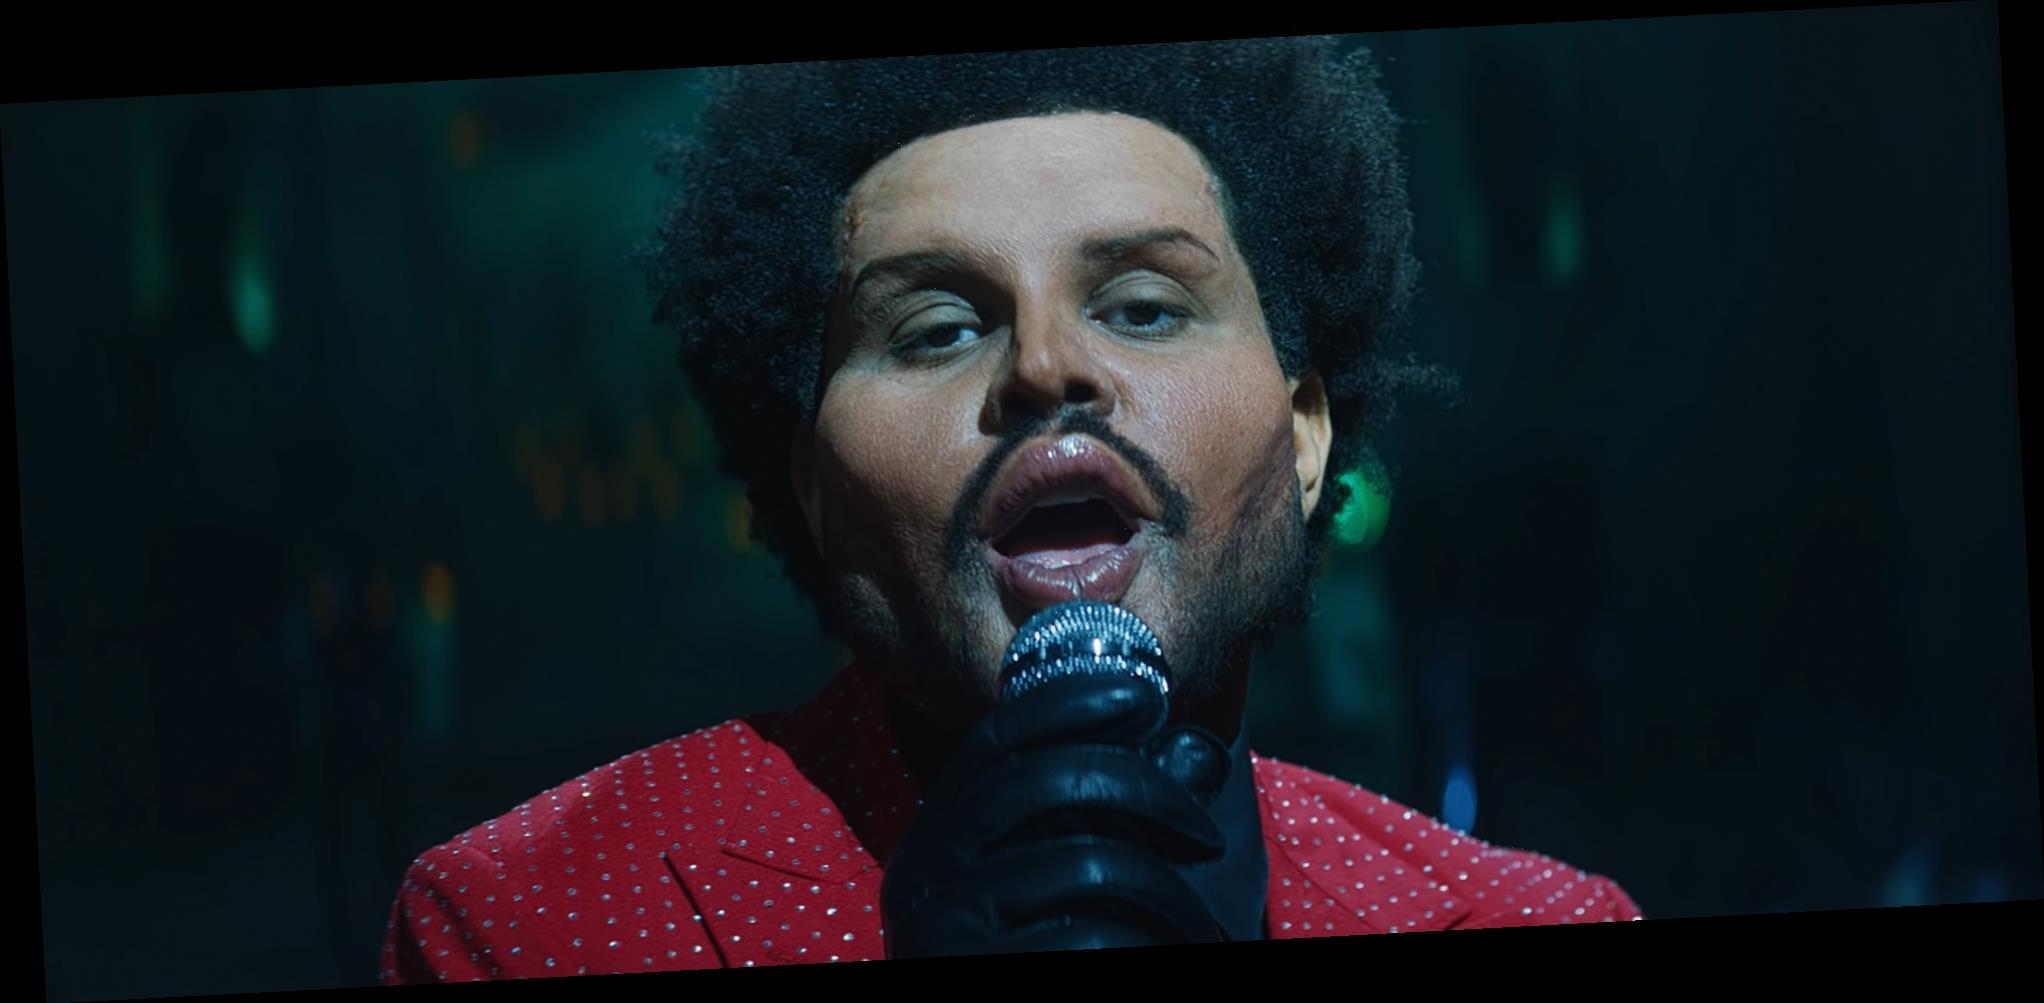 The Weeknd Shows Off Dramatic Plastic Surgery-Enhanced Face for 'Save Your Tears' Music Video